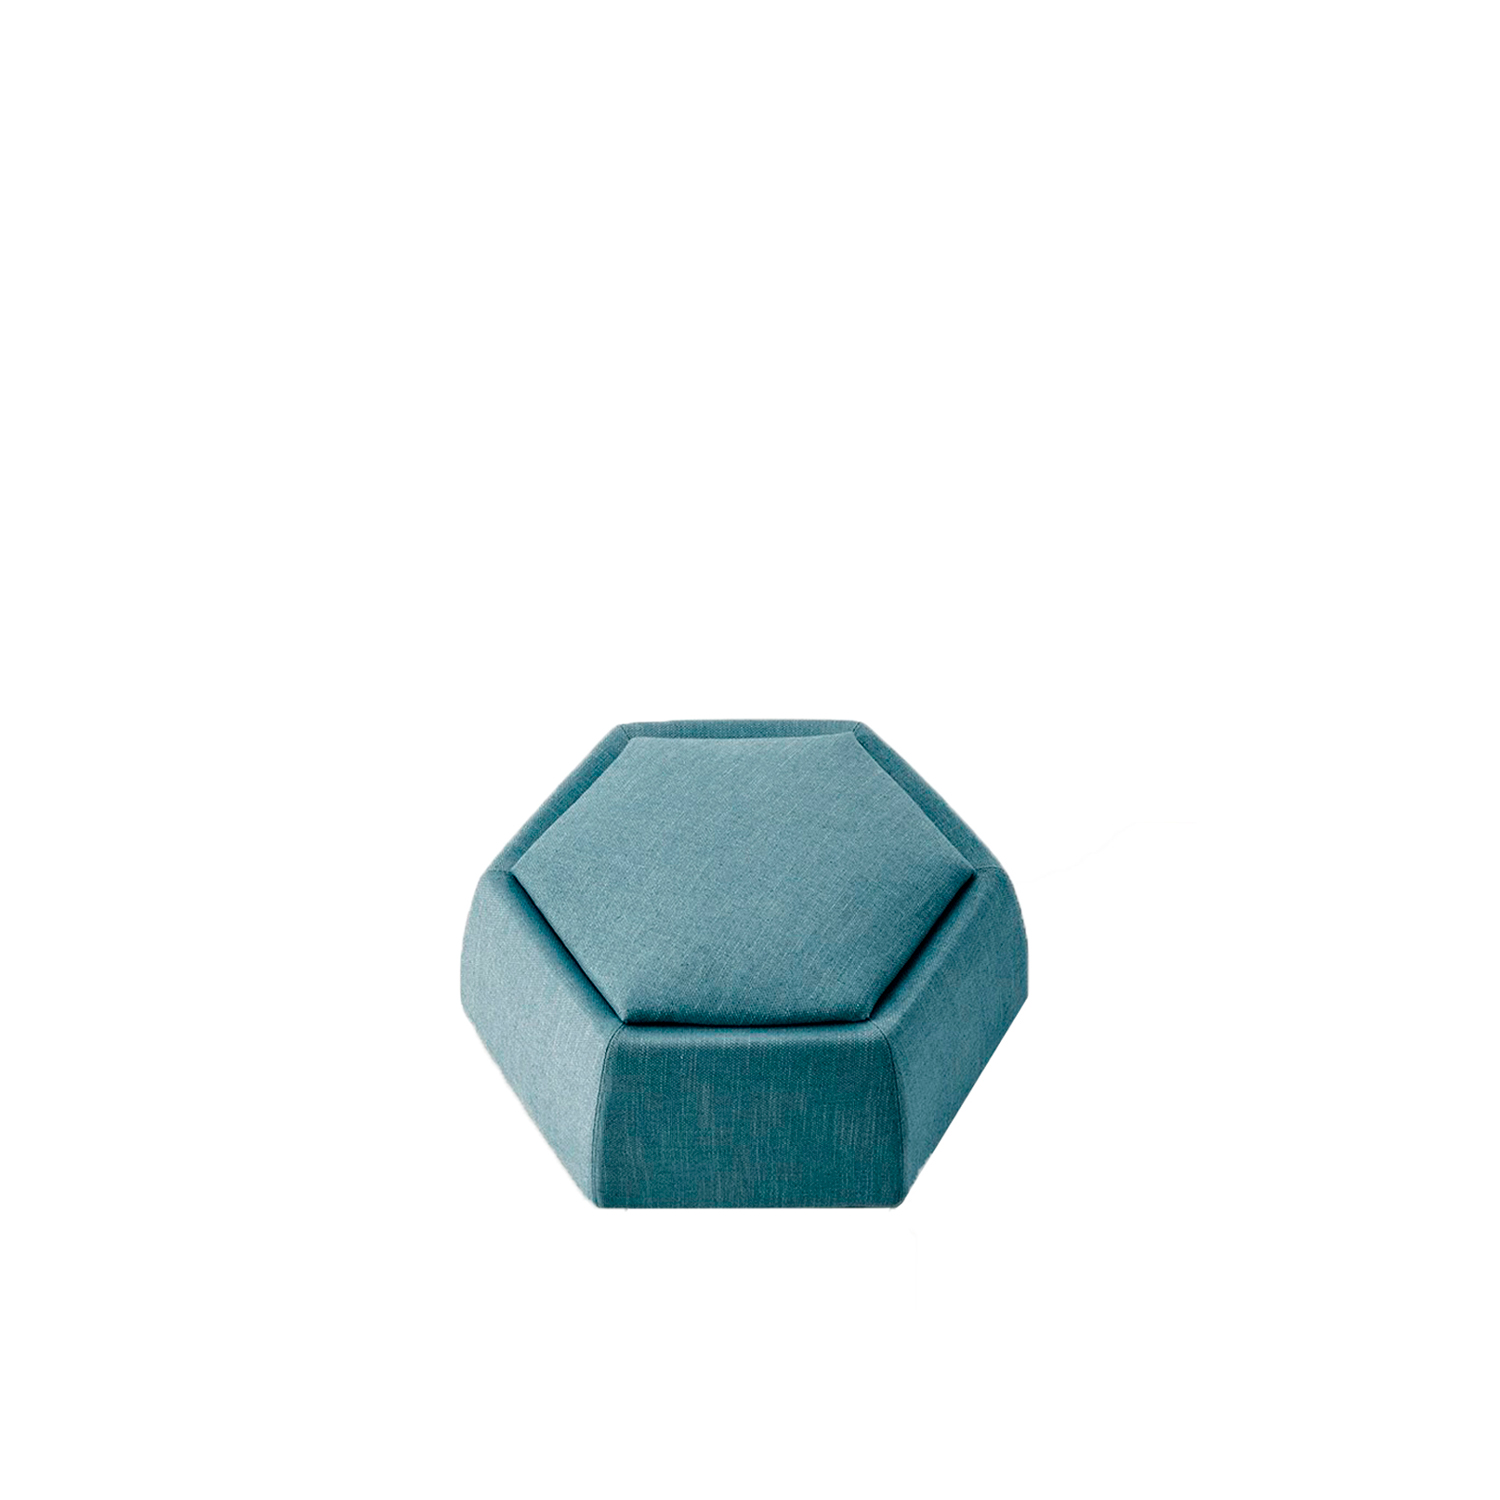 Honey Pouf - Eclectic by nature, the Honey pouf appears to be a small hexagonal cell that adapts to the needs of the moment.‎ Honey features a seamless modular design, and the various elements can be attached and combined to form a veritable honeycomb.‎